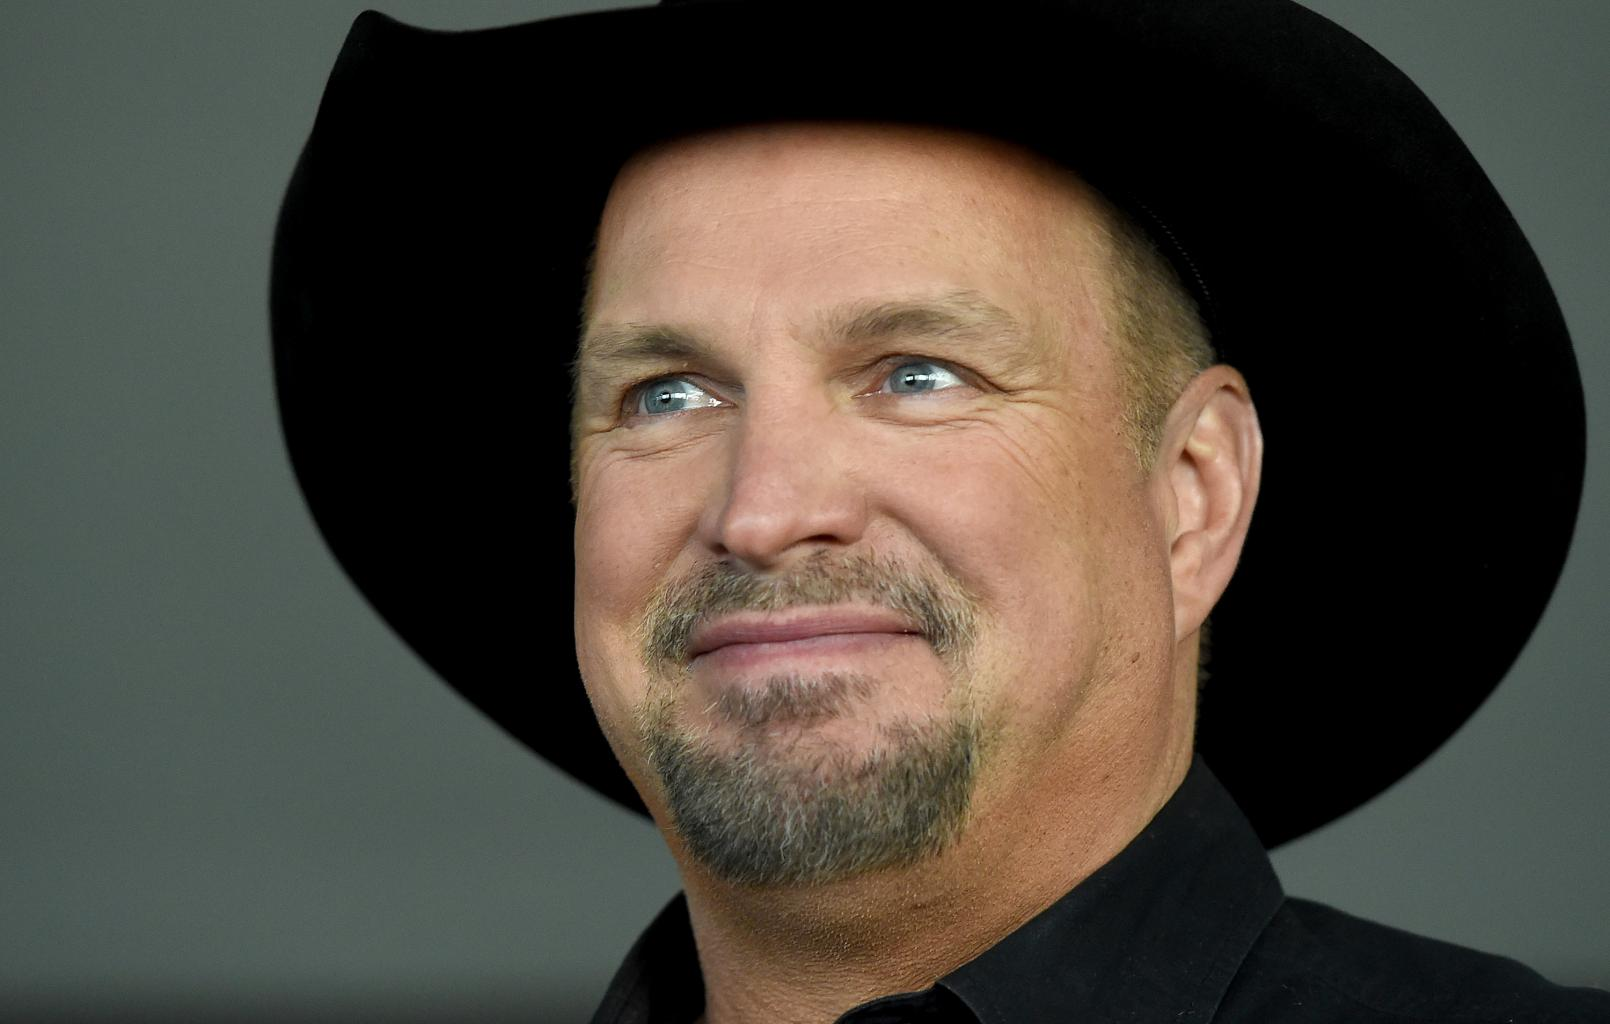 Garth Brooks Praises Ashton Kutcher  's Rendition Of    Friends in Low Places  ', Talks Two New Albums